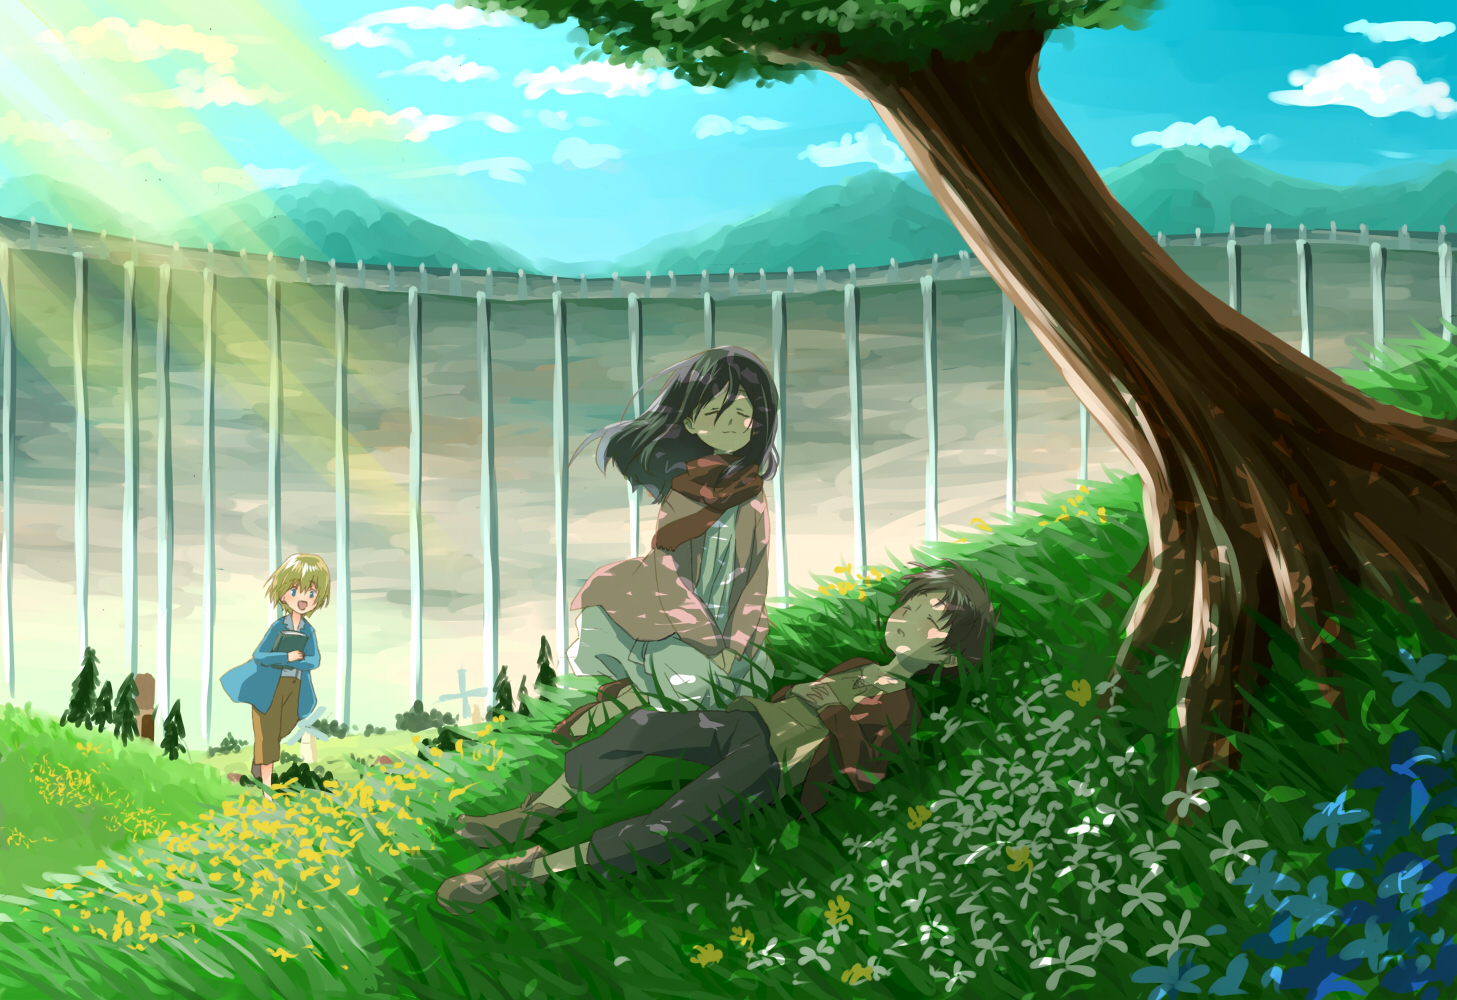 grass Anime in girl laying